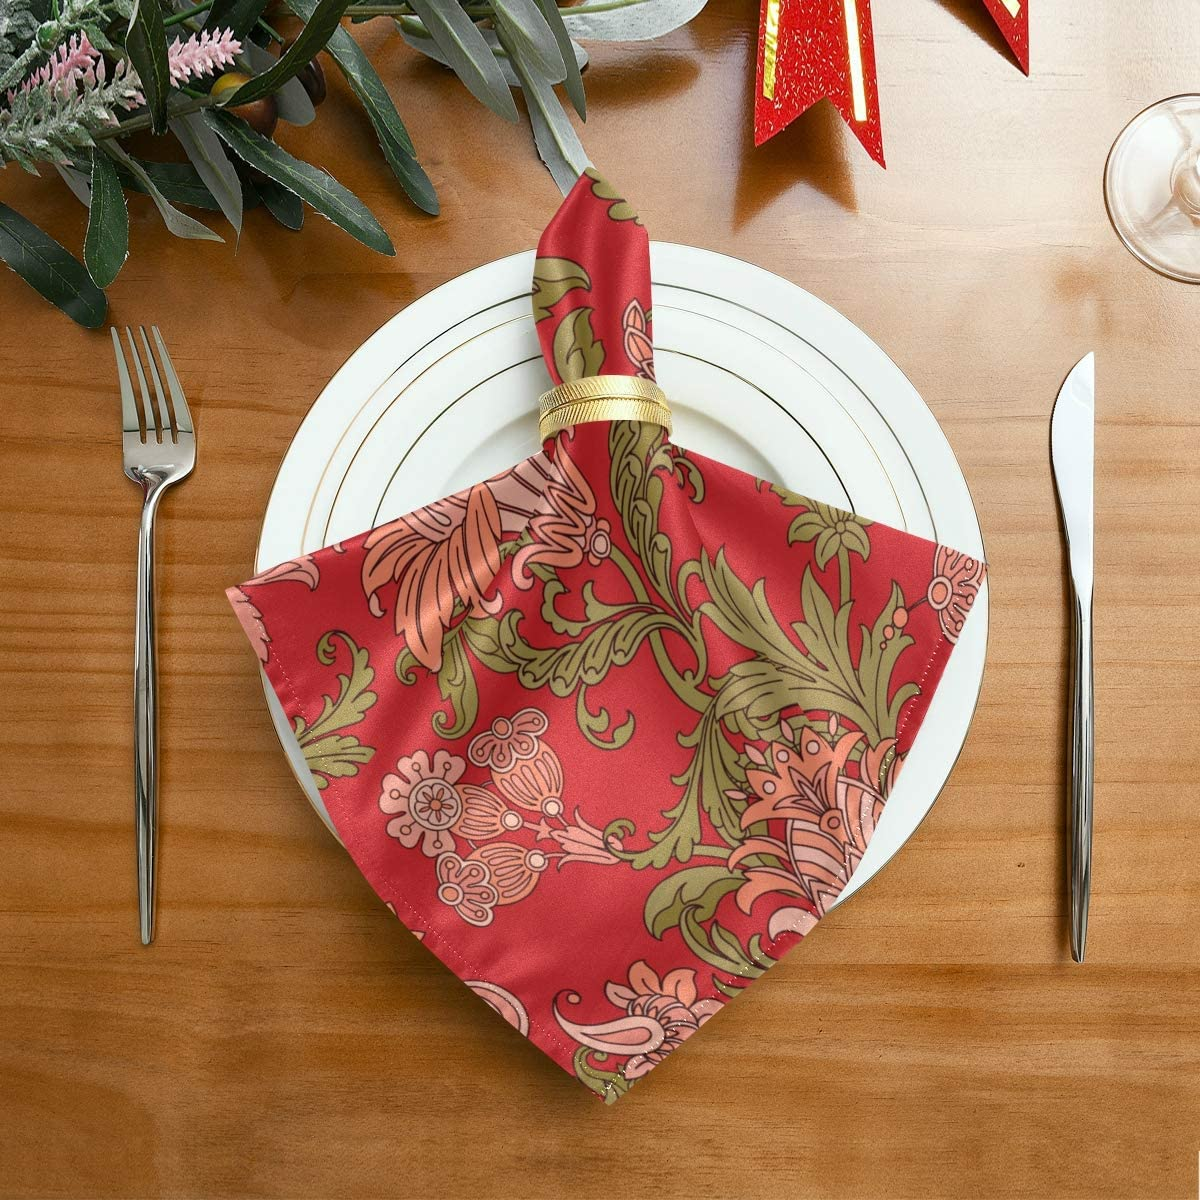 CFAUIRY Cloth Napkins Set of 6 Flower Leaves 20x20 Inch Dinner Reusable Napkins Table Cloth Napkin Washable for Holiday Party Restaurant Banquet